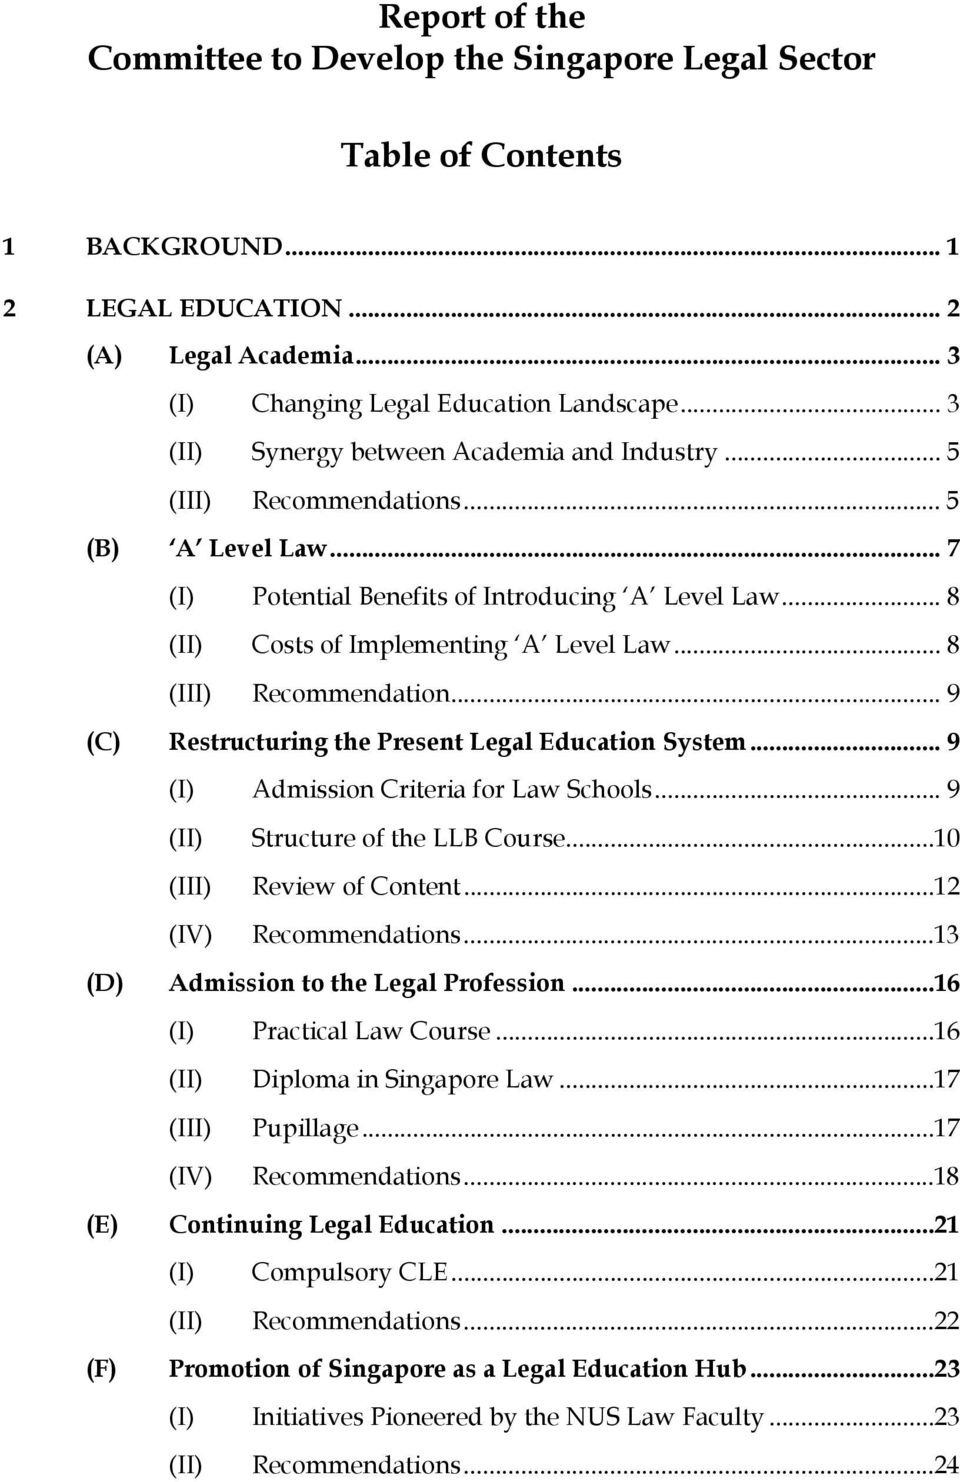 .. 8 (III) Recommendation... 9 (C) Restructuring the Present Legal Education System... 9 (I) Admission Criteria for Law Schools... 9 (II) Structure of the LLB Course...10 (III) Review of Content.